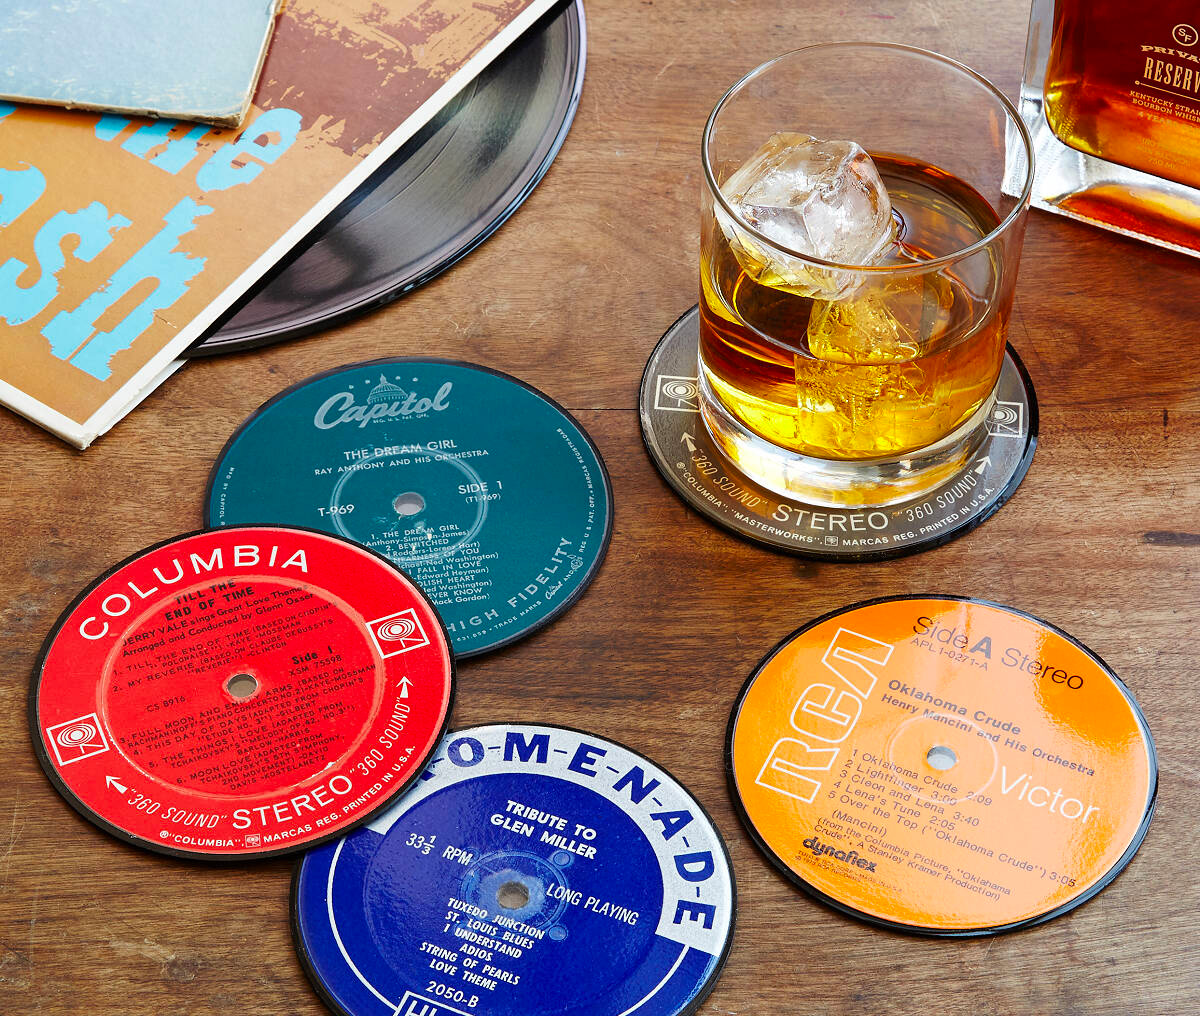 Upcycled Record Coasters Mix Vinyl with Your Favorite Drink at werd.com